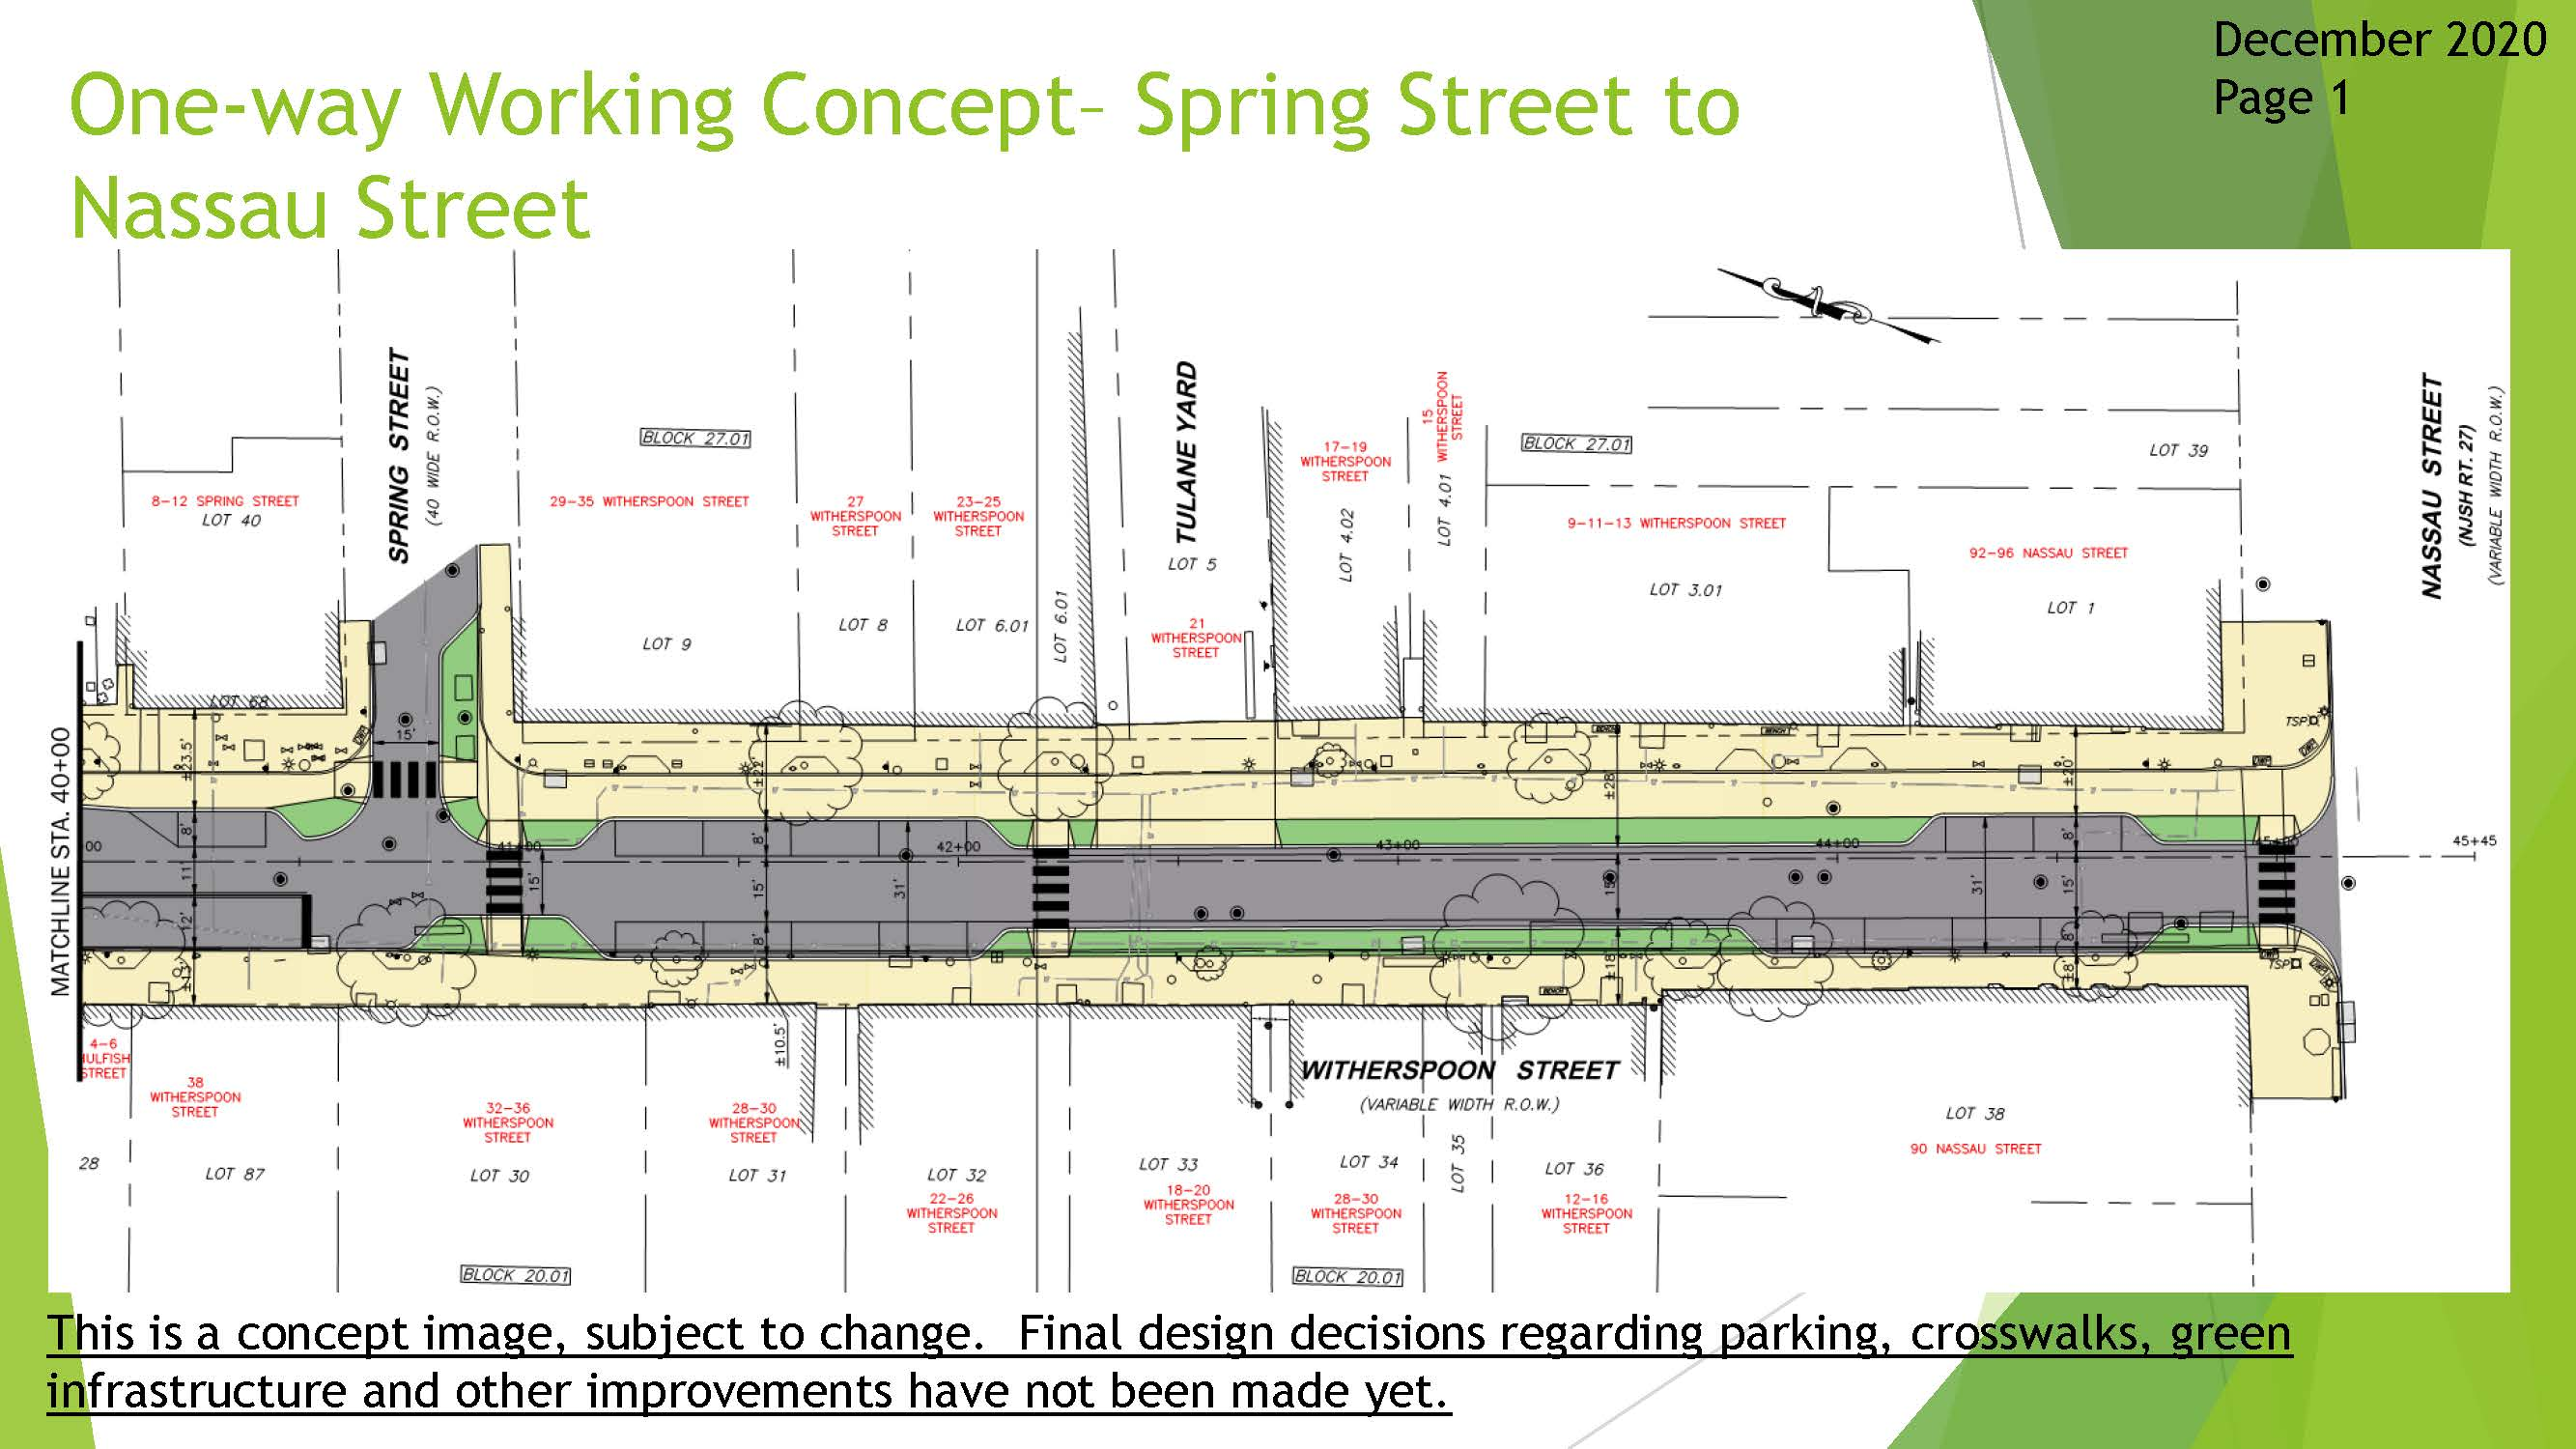 One Way Working Concept Drawing - Spring Street to Nassau Street